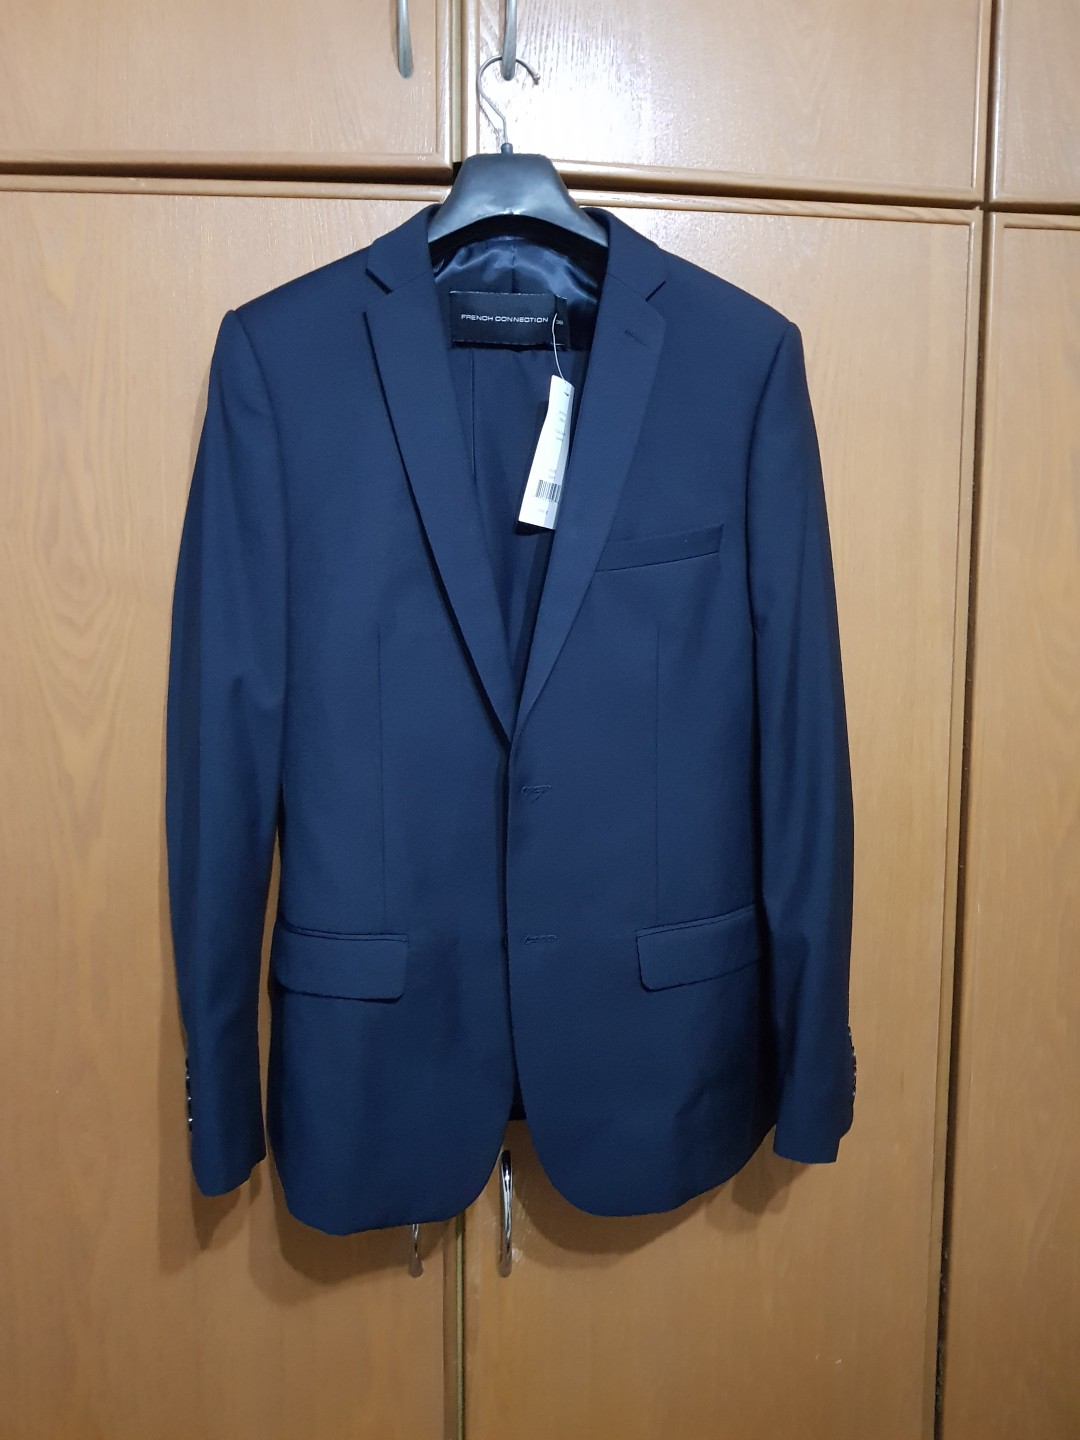 9a303ebe7bc FRENCH CONNECTION Navy Blue Blazer / Suit, Men's Fashion, Clothes ...